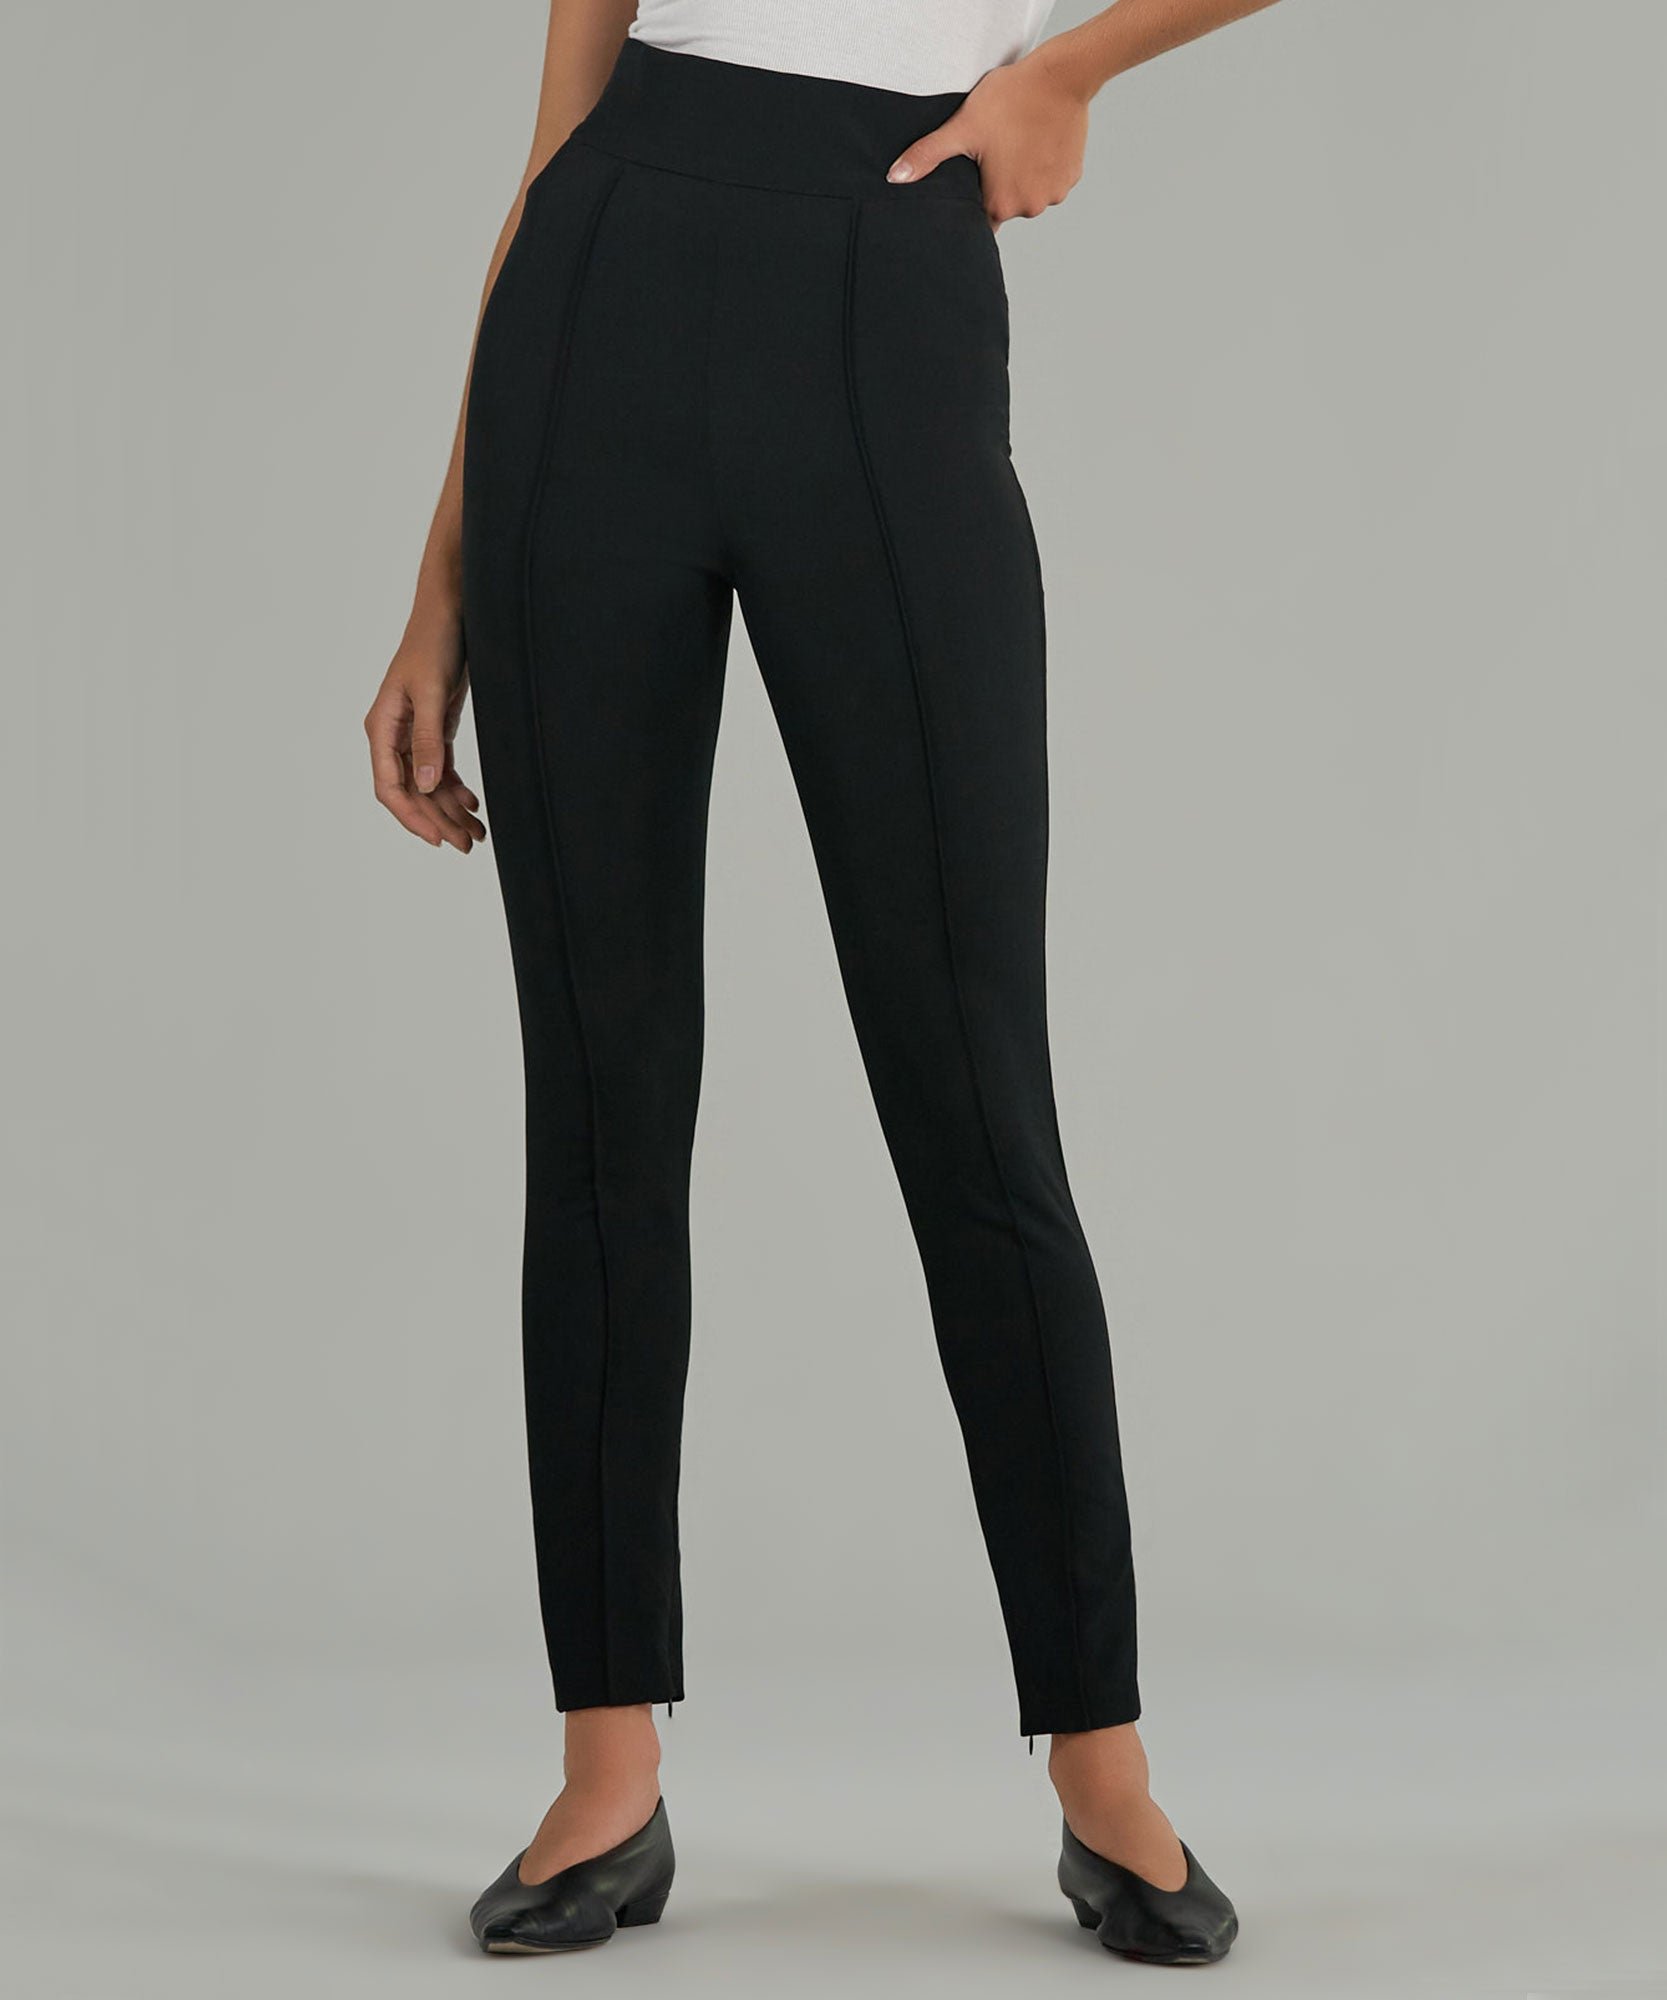 Black High Waisted Stretch Pants - Women's Pants by ATM Anthony Thomas Melillo